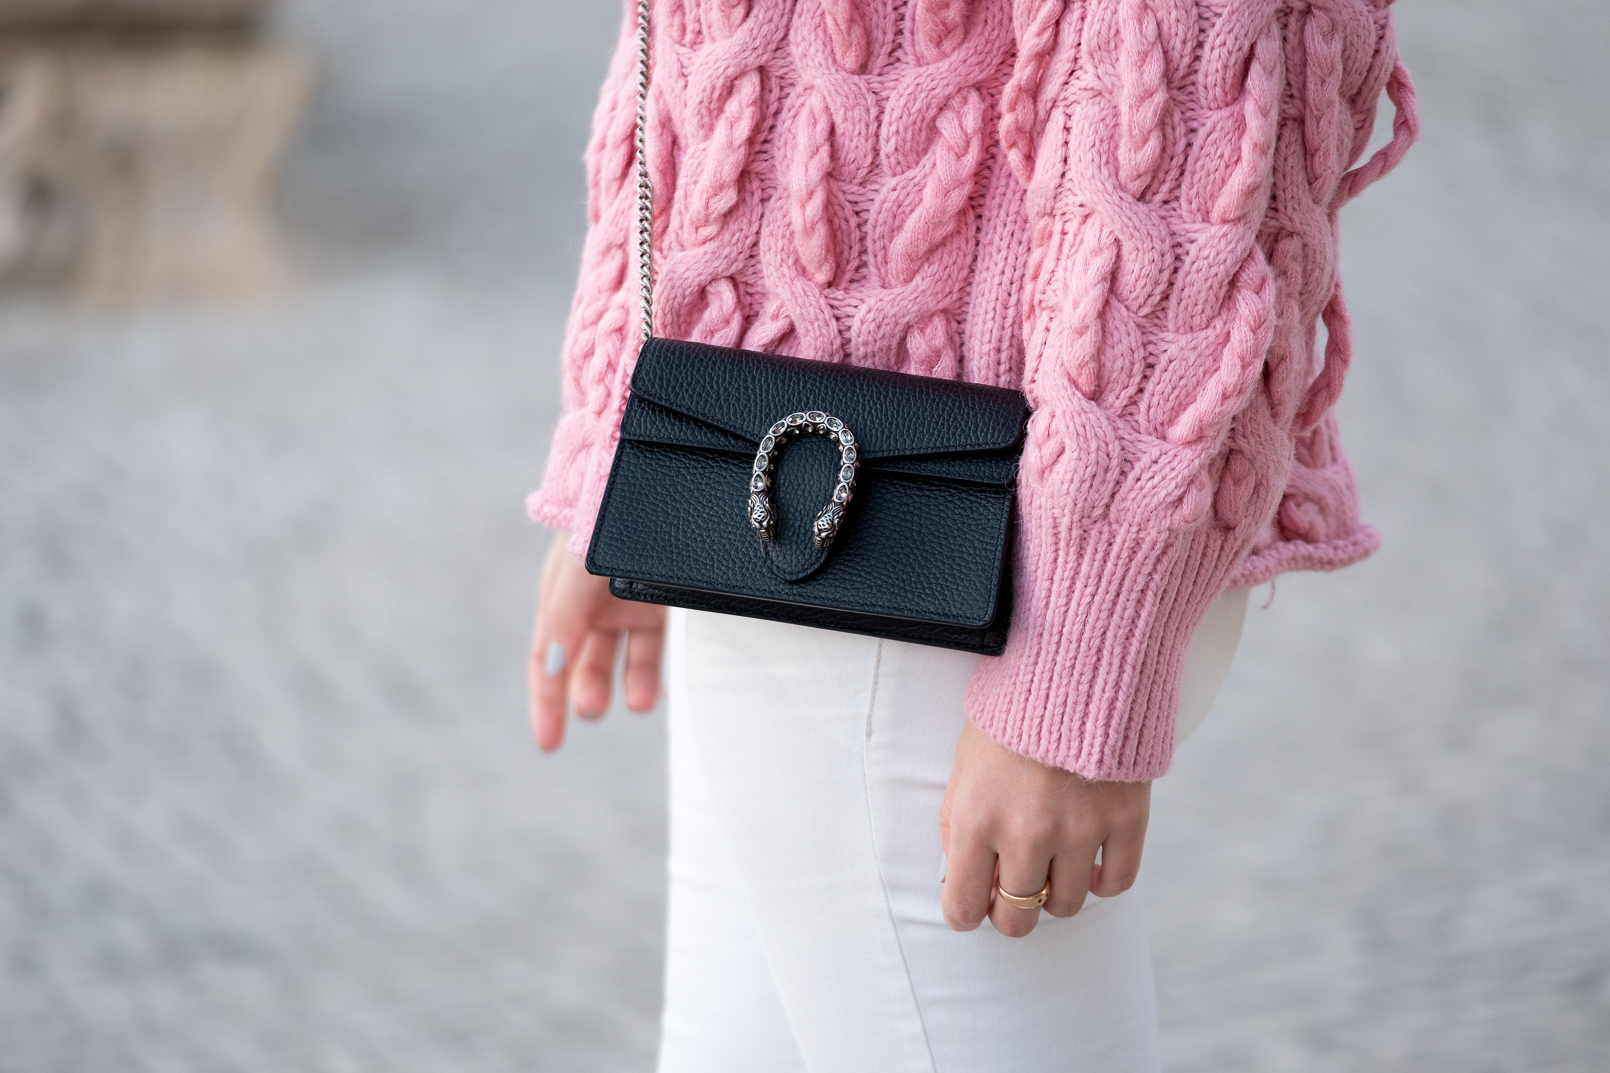 Le Fashionaire pink zara cable knit sweater white mango trousers gucci mini dionysus leather bag 9706 EN pink zara cable knit sweater white mango trousers gucci mini dionysus leather bag 9706 EN